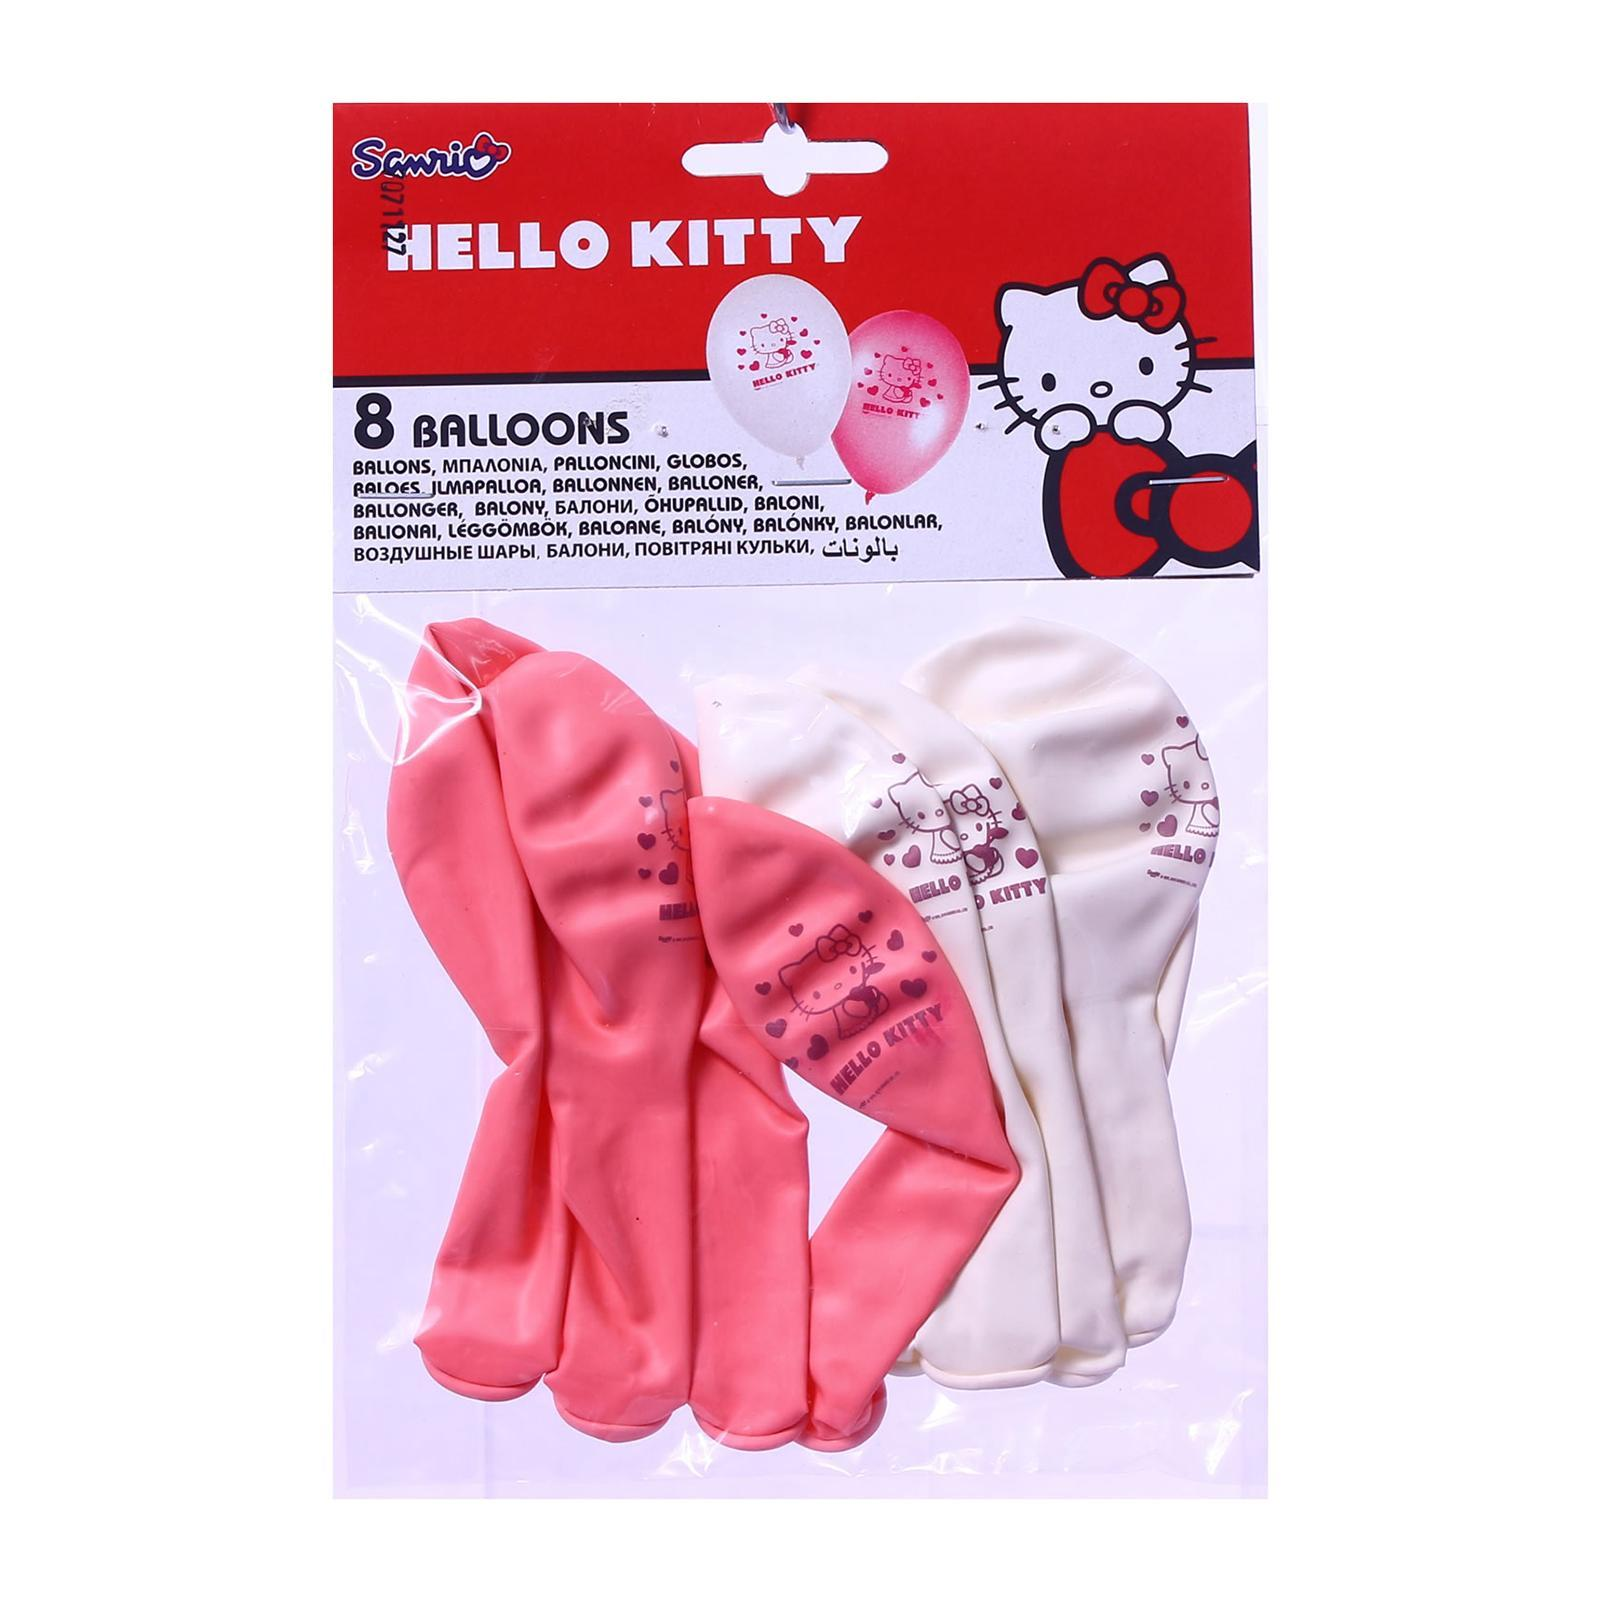 Disney Procos Sanrio Procos Hello Kitty Hearts 11 Inch Printed Balloon